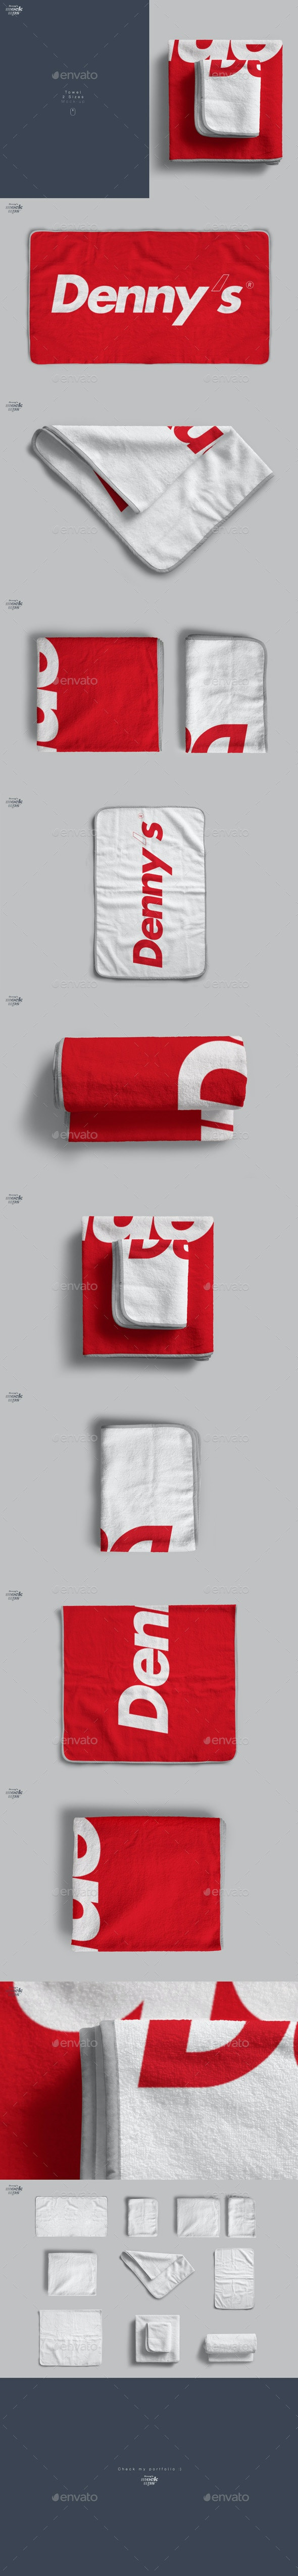 Towel 2 Sizes Mockup - Miscellaneous Product Mock-Ups